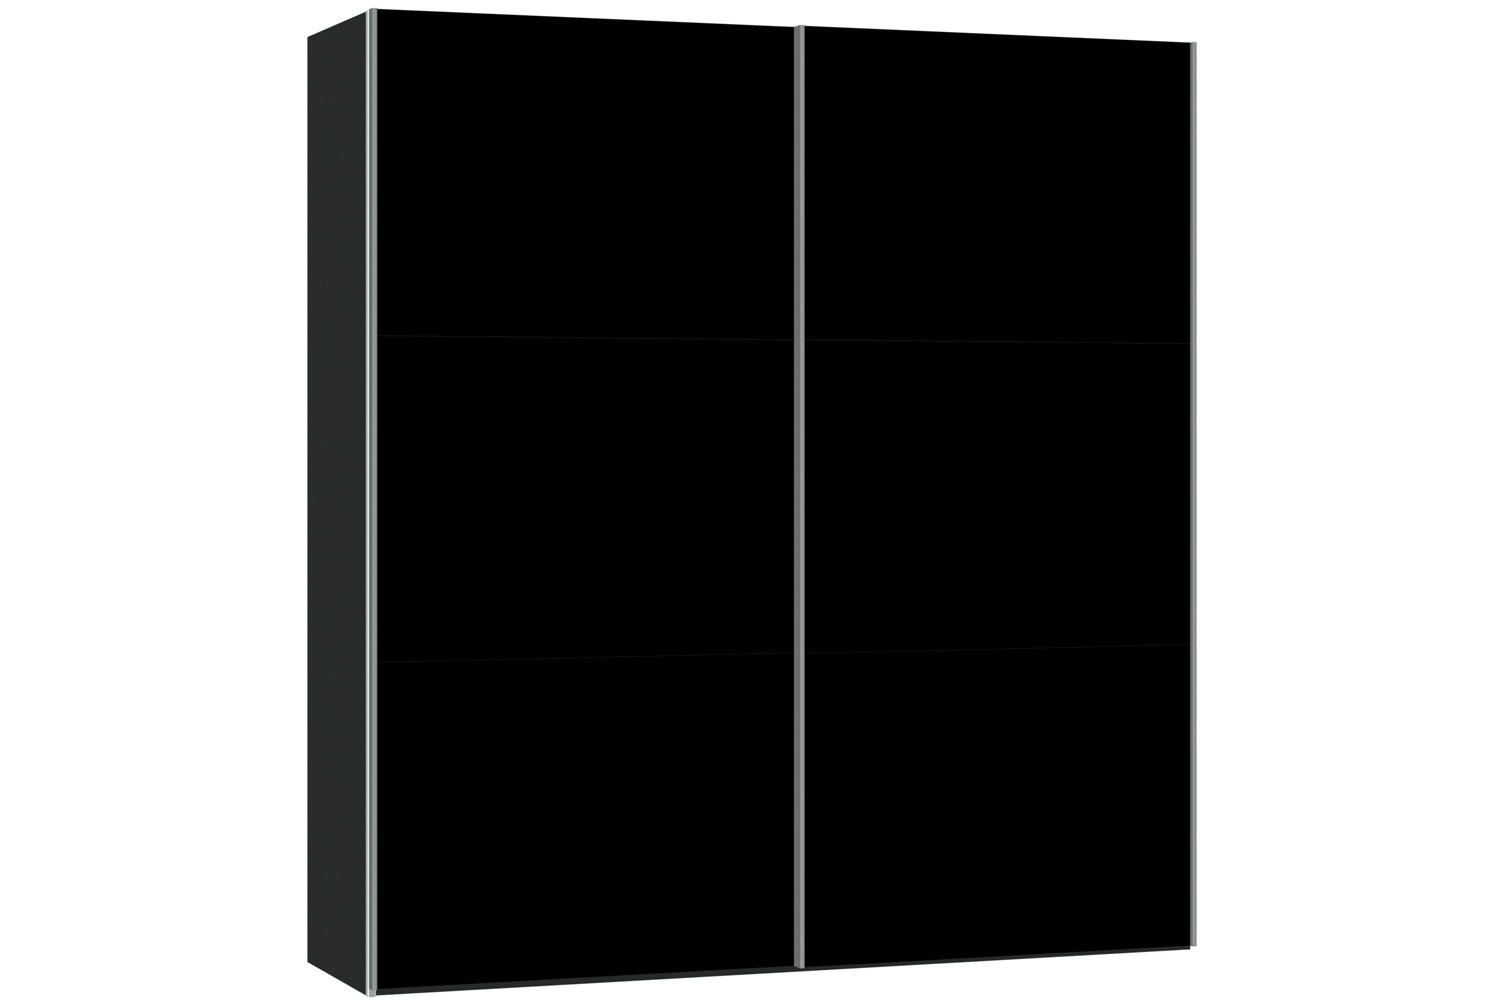 Janet Sliding Wardrobe 203Cm | Black Glass